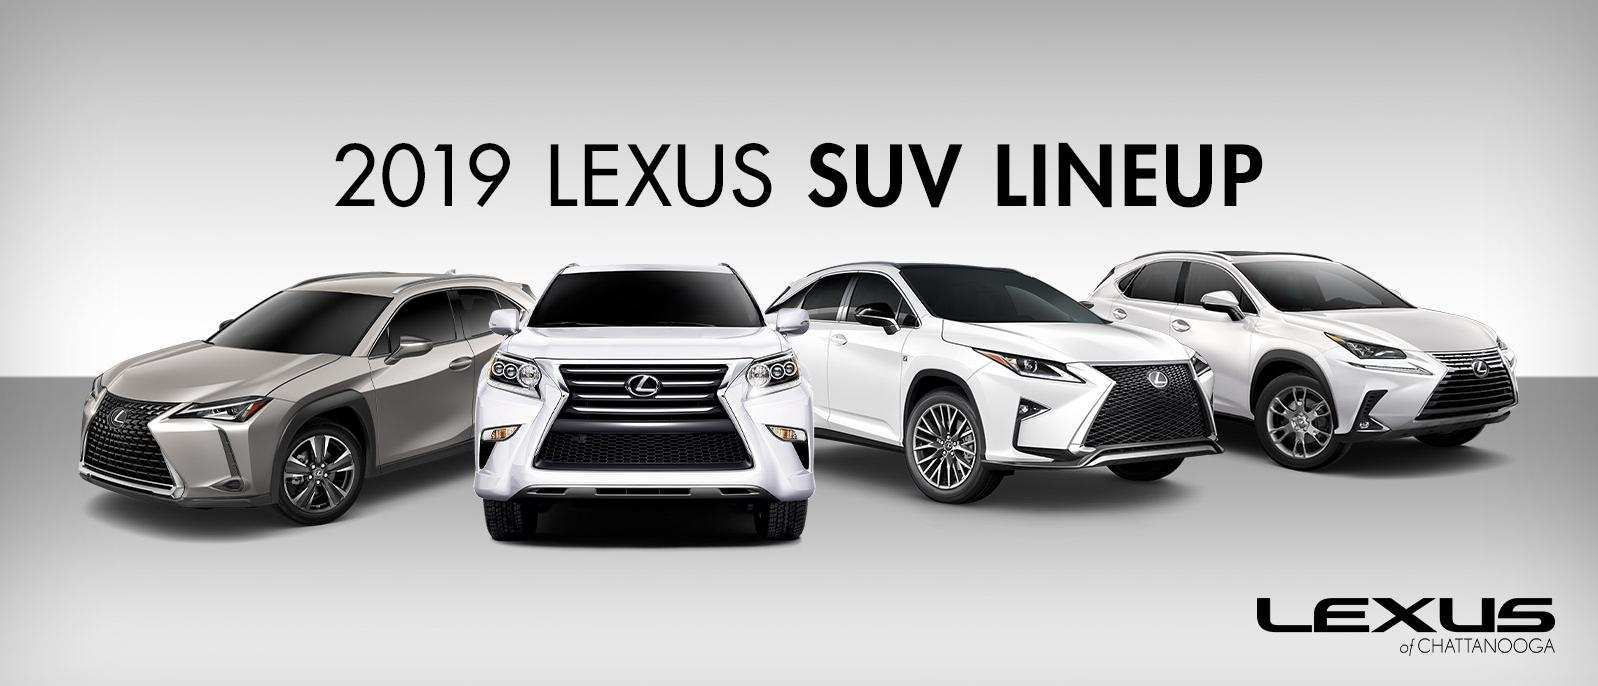 84 Best Review Lexus 2019 Lineup Research New for Lexus 2019 Lineup